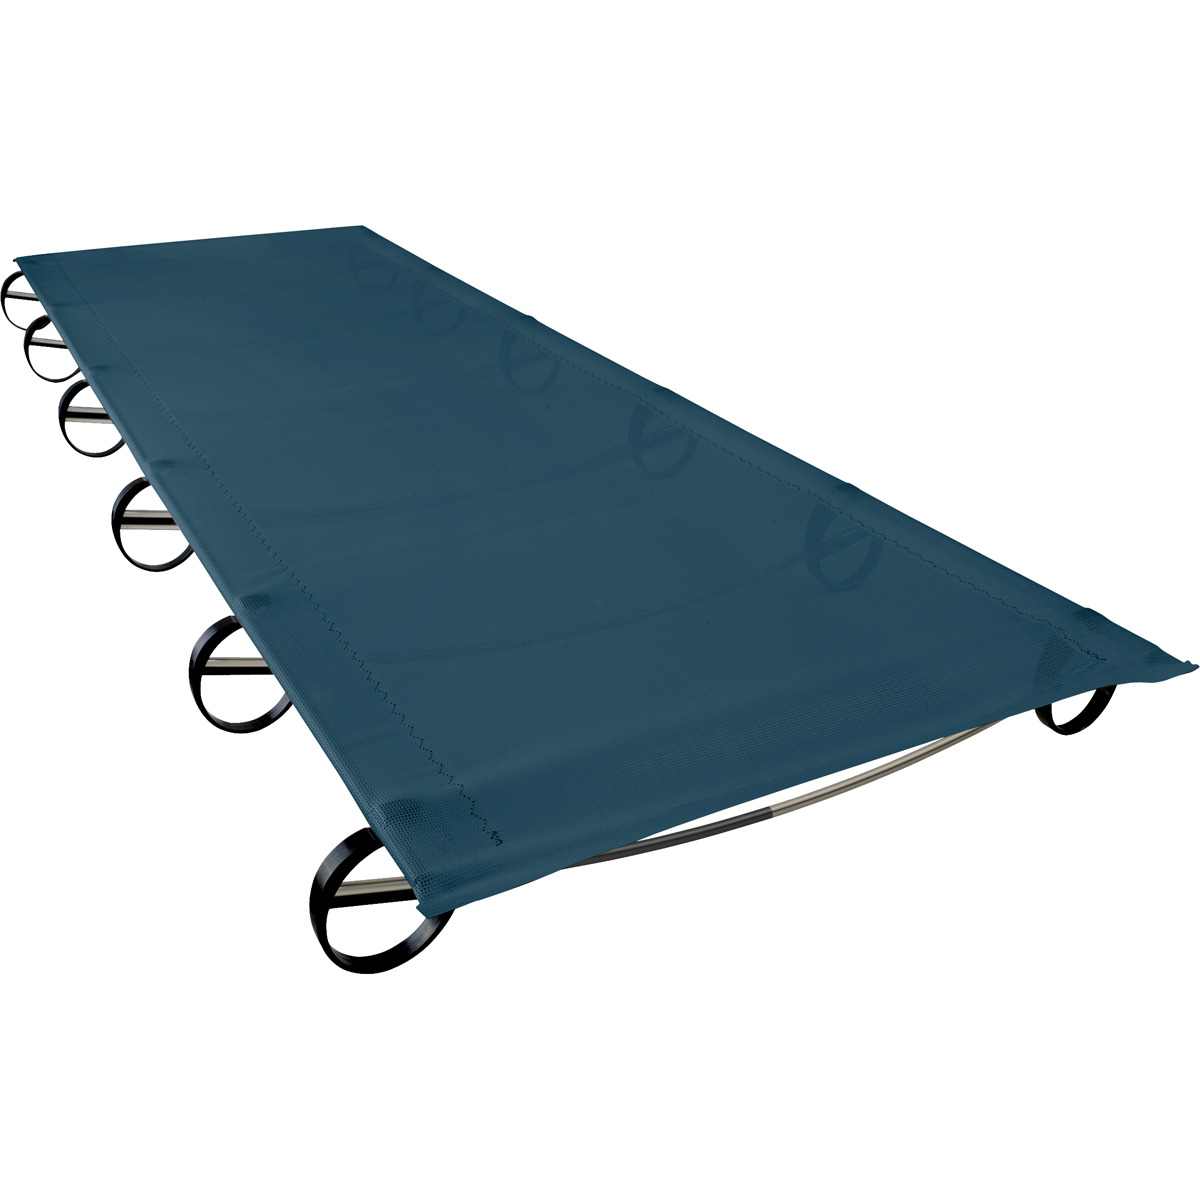 ThermARest Mesh Cot - 1